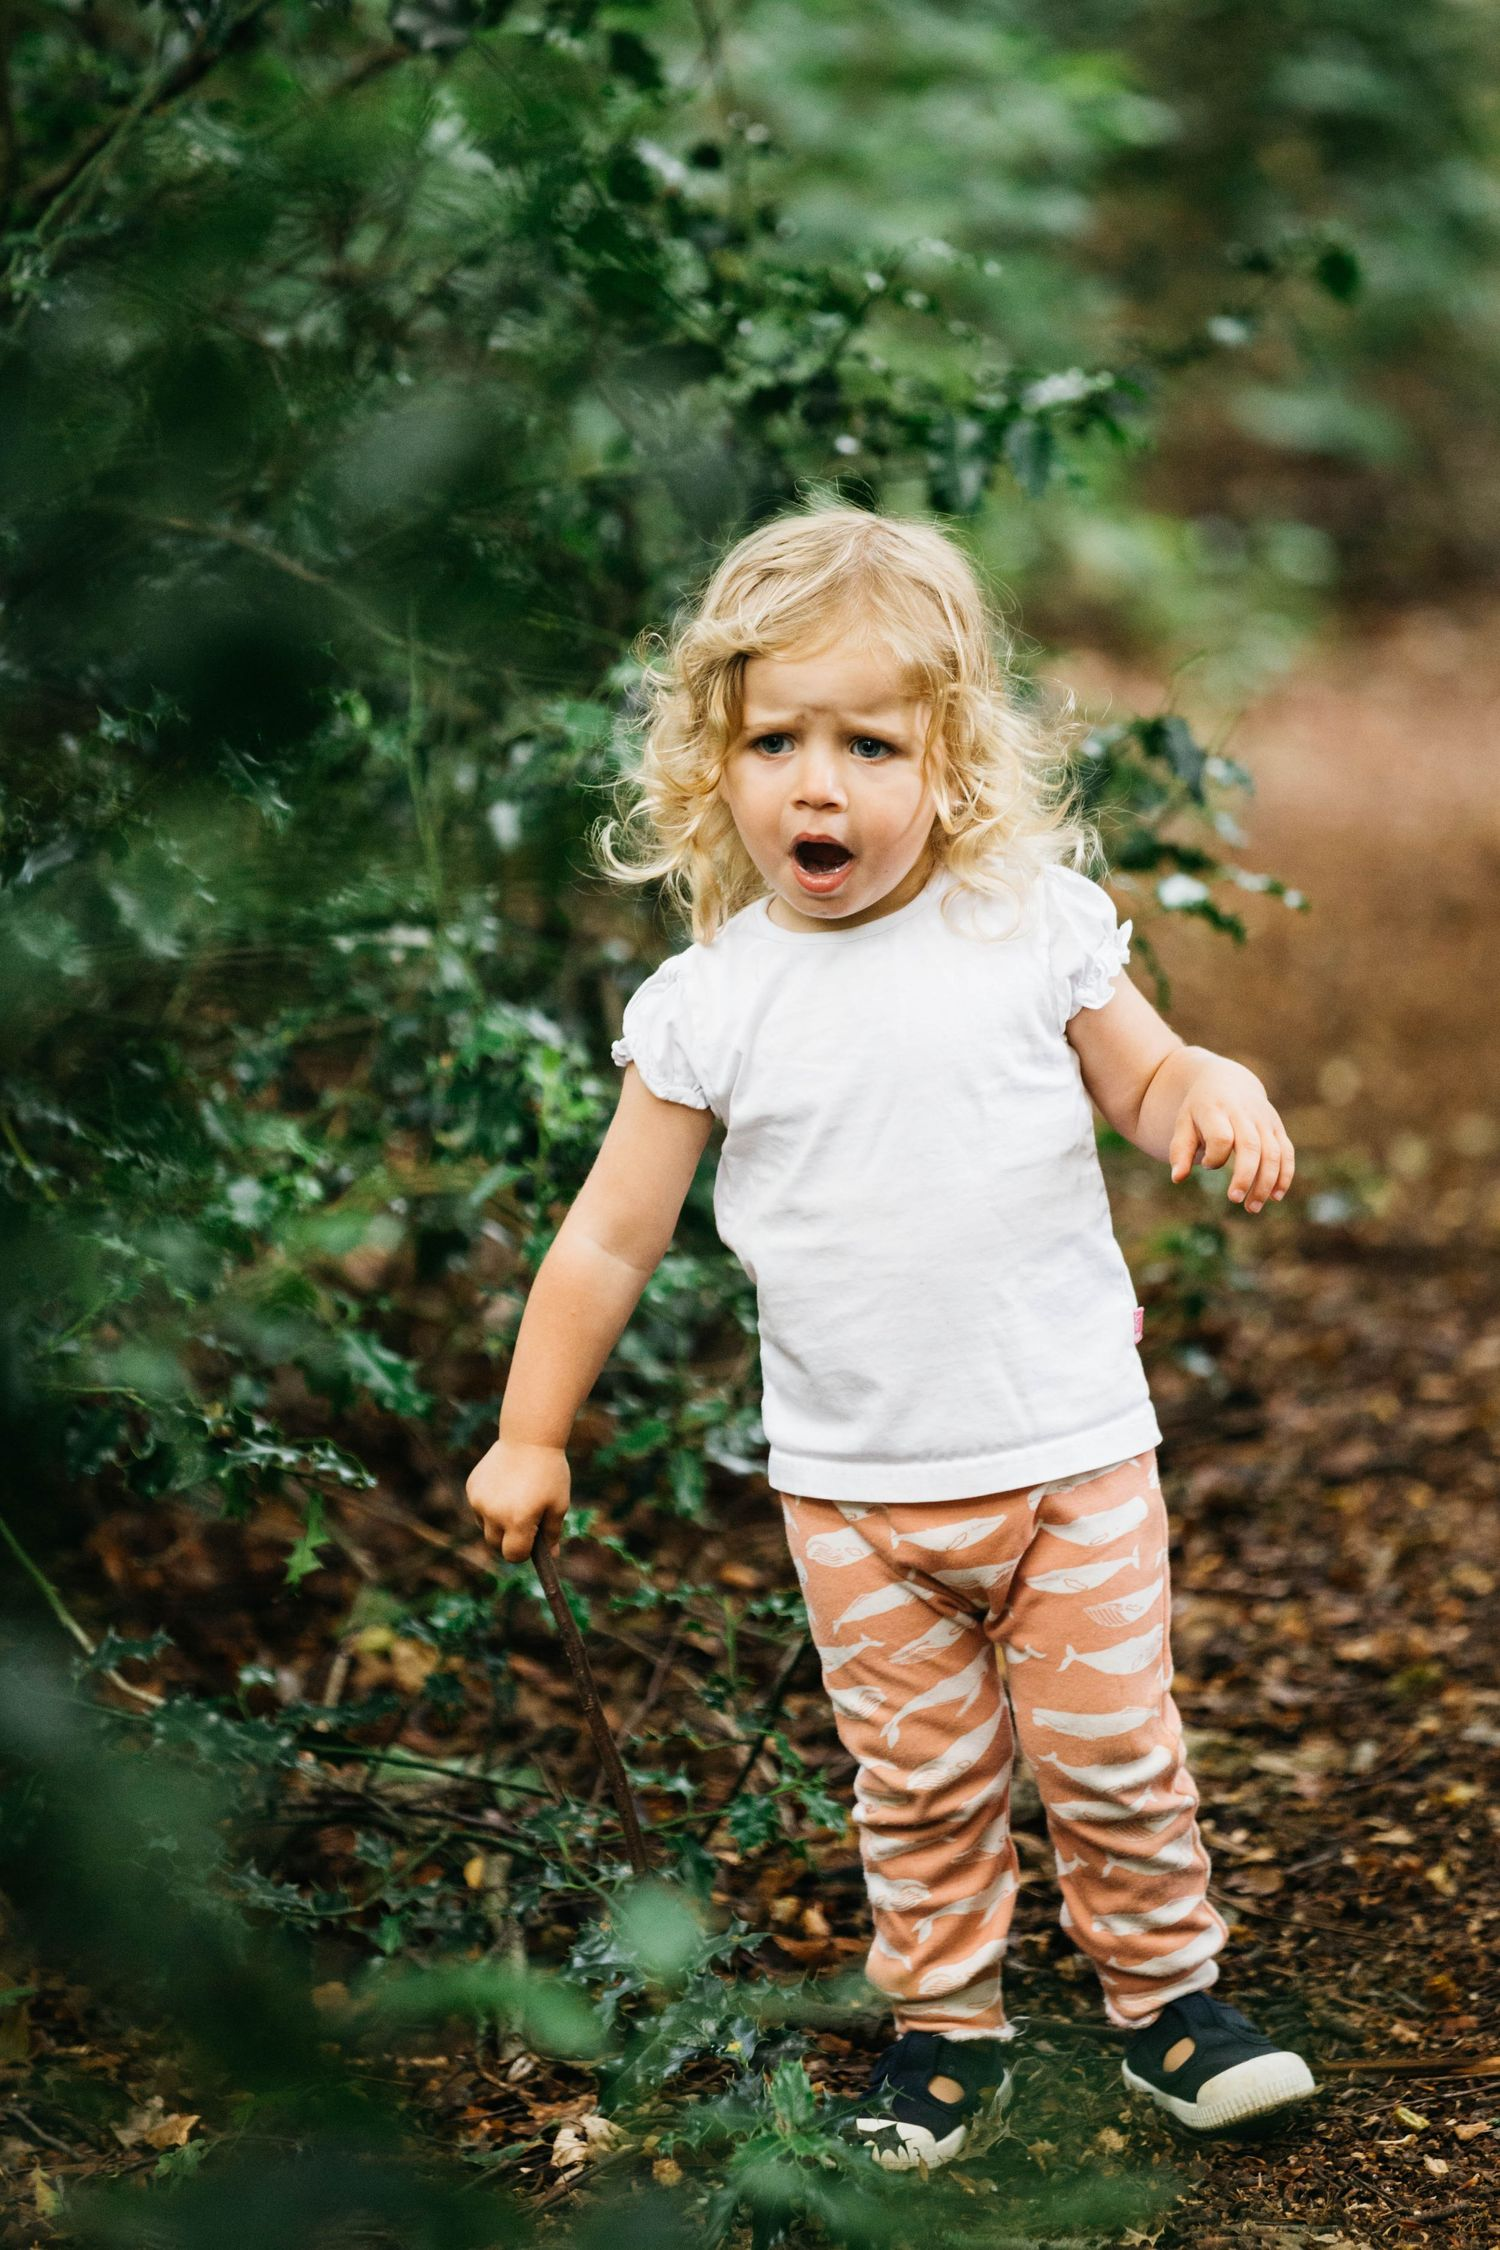 toddler girl with blonde hair pulling faces